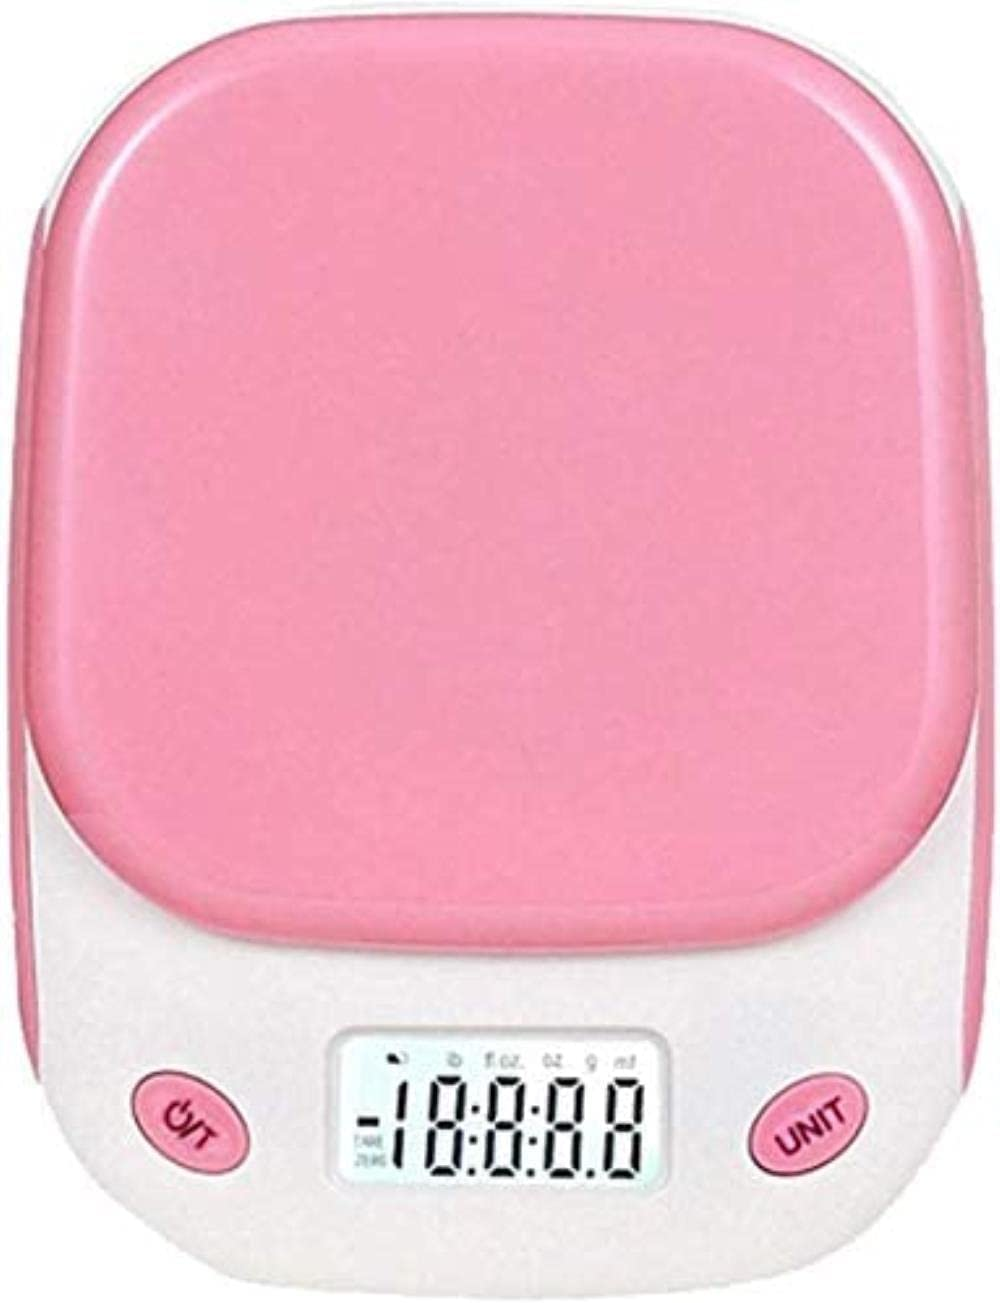 Max 85% Max 89% OFF OFF Digital Scale Electronic ABS Plastic H Home Kitchen Scales